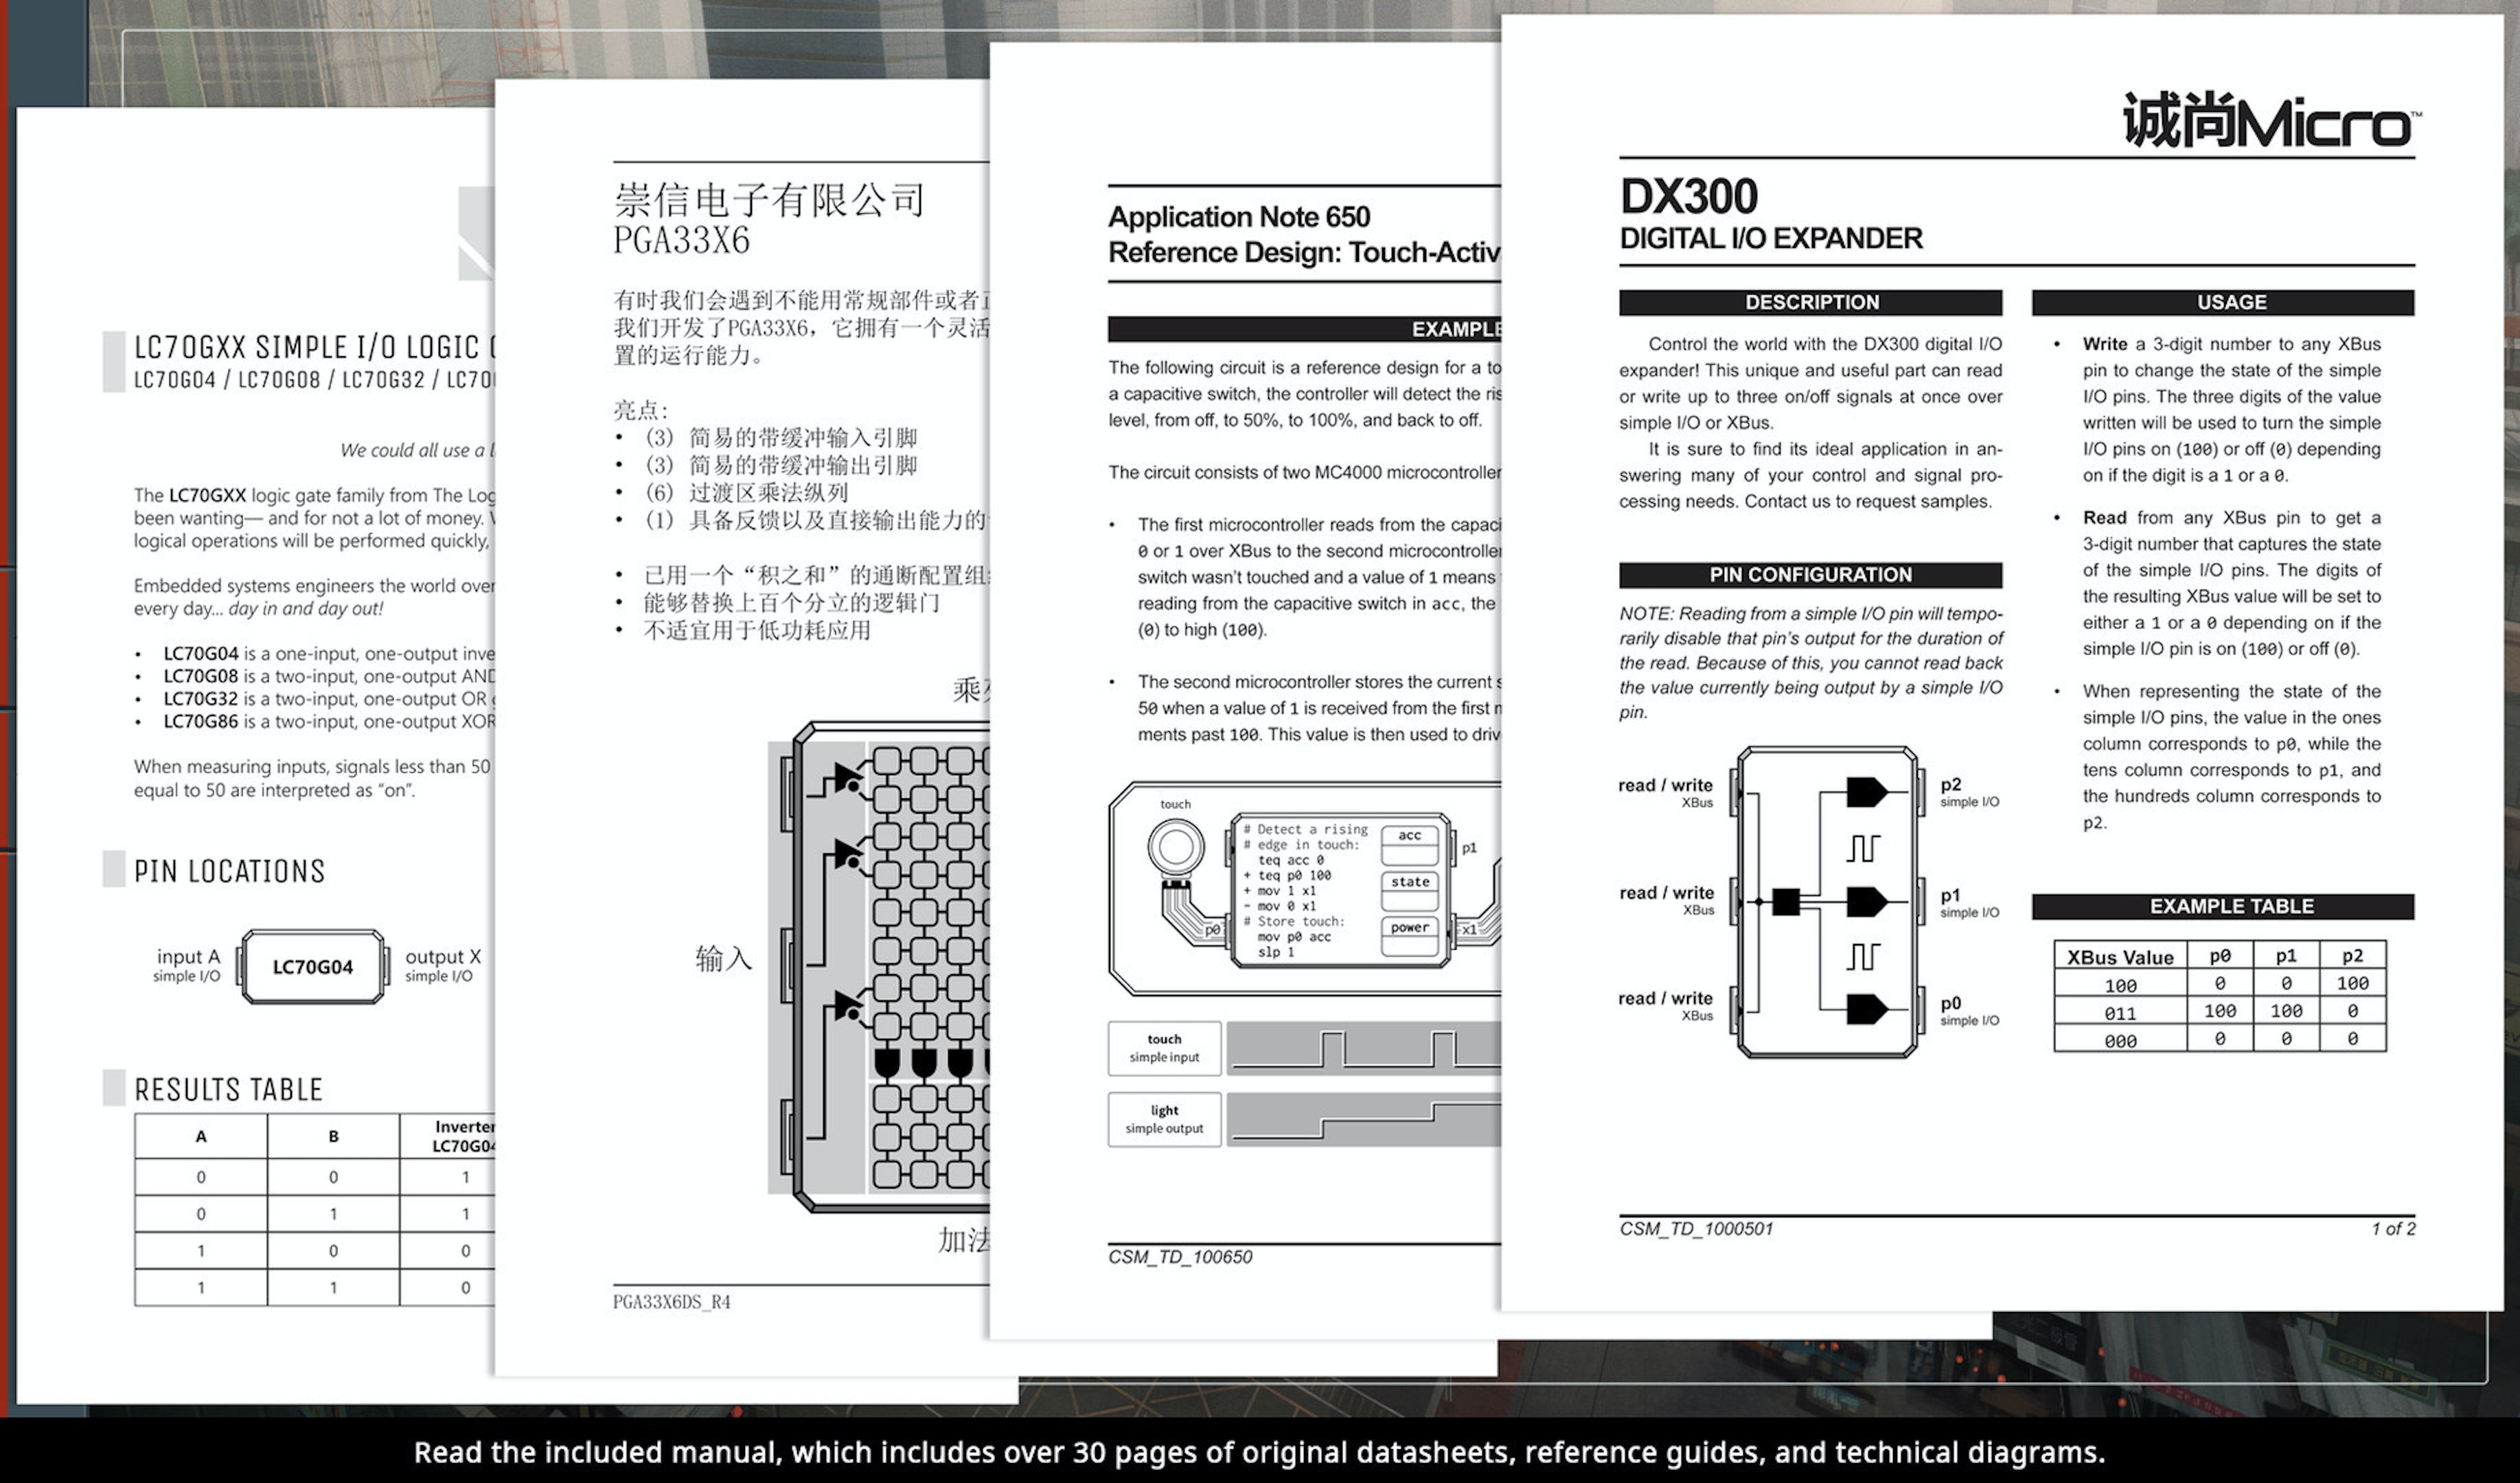 This is an example of what the physical manual looks like for 'Shenzhen I/O'.